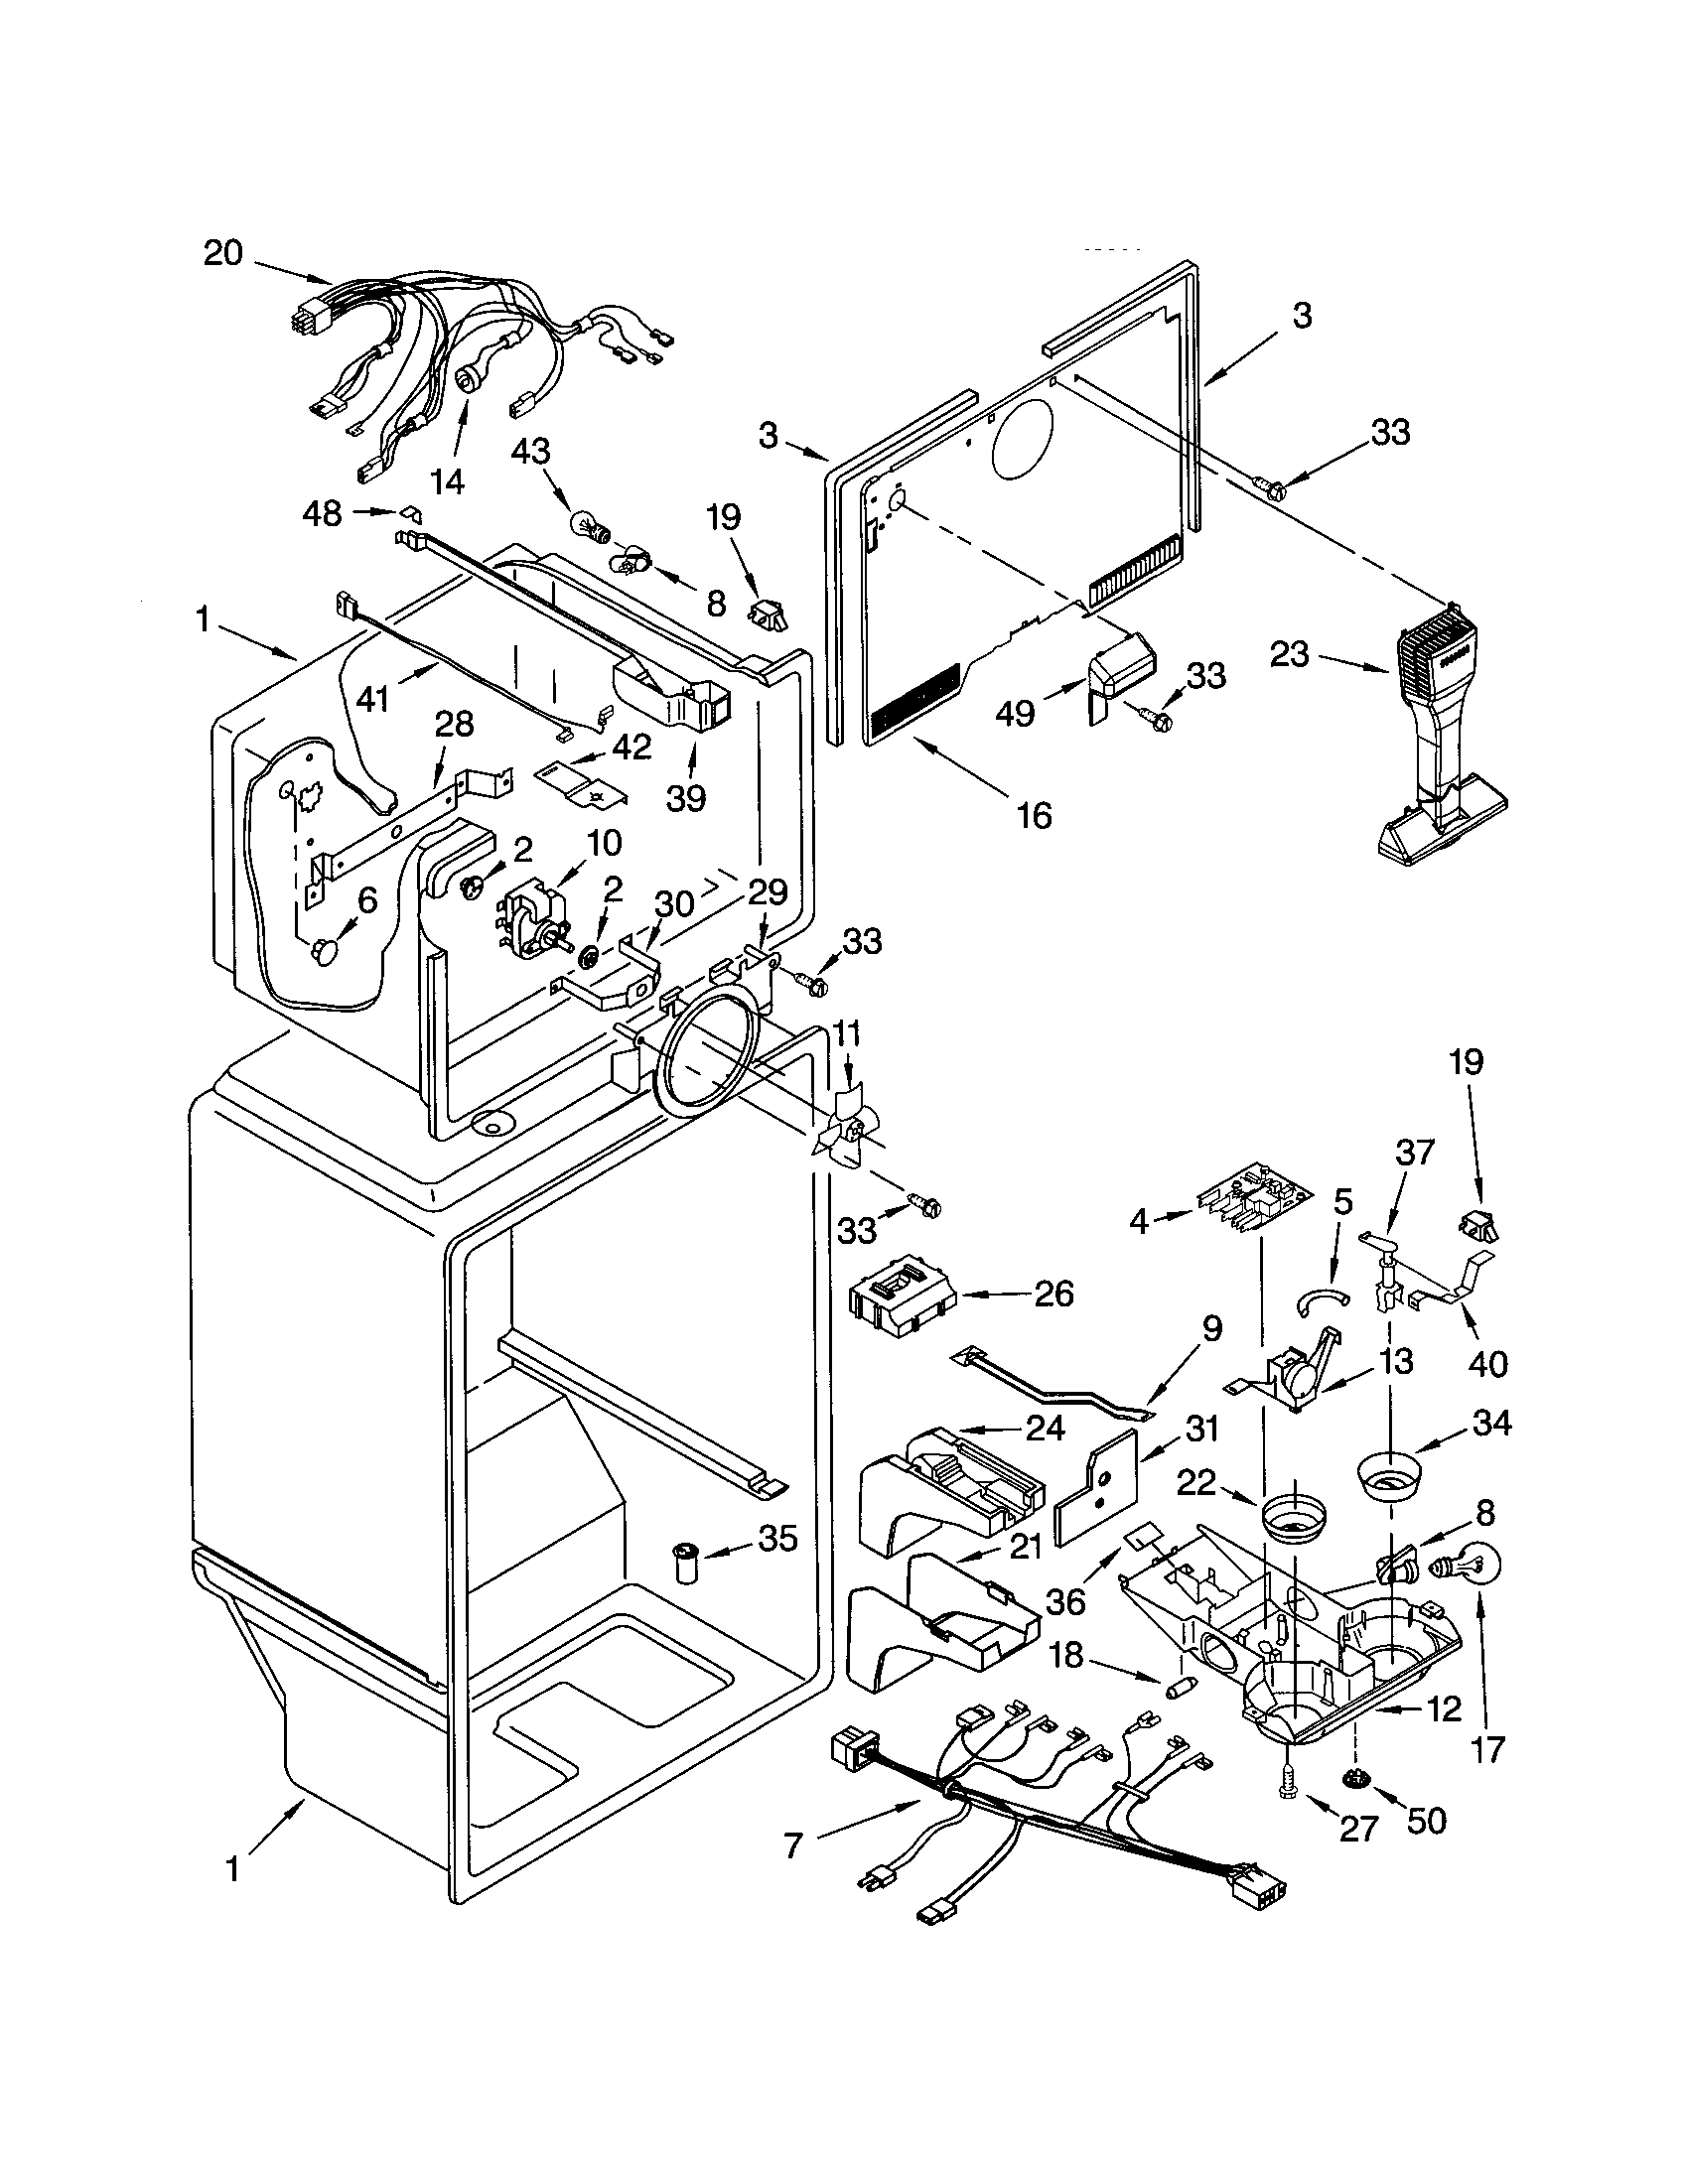 kenmore refrigerator schematic diagram kenmore model 106.63182302 is dripping from the freezer ... #11